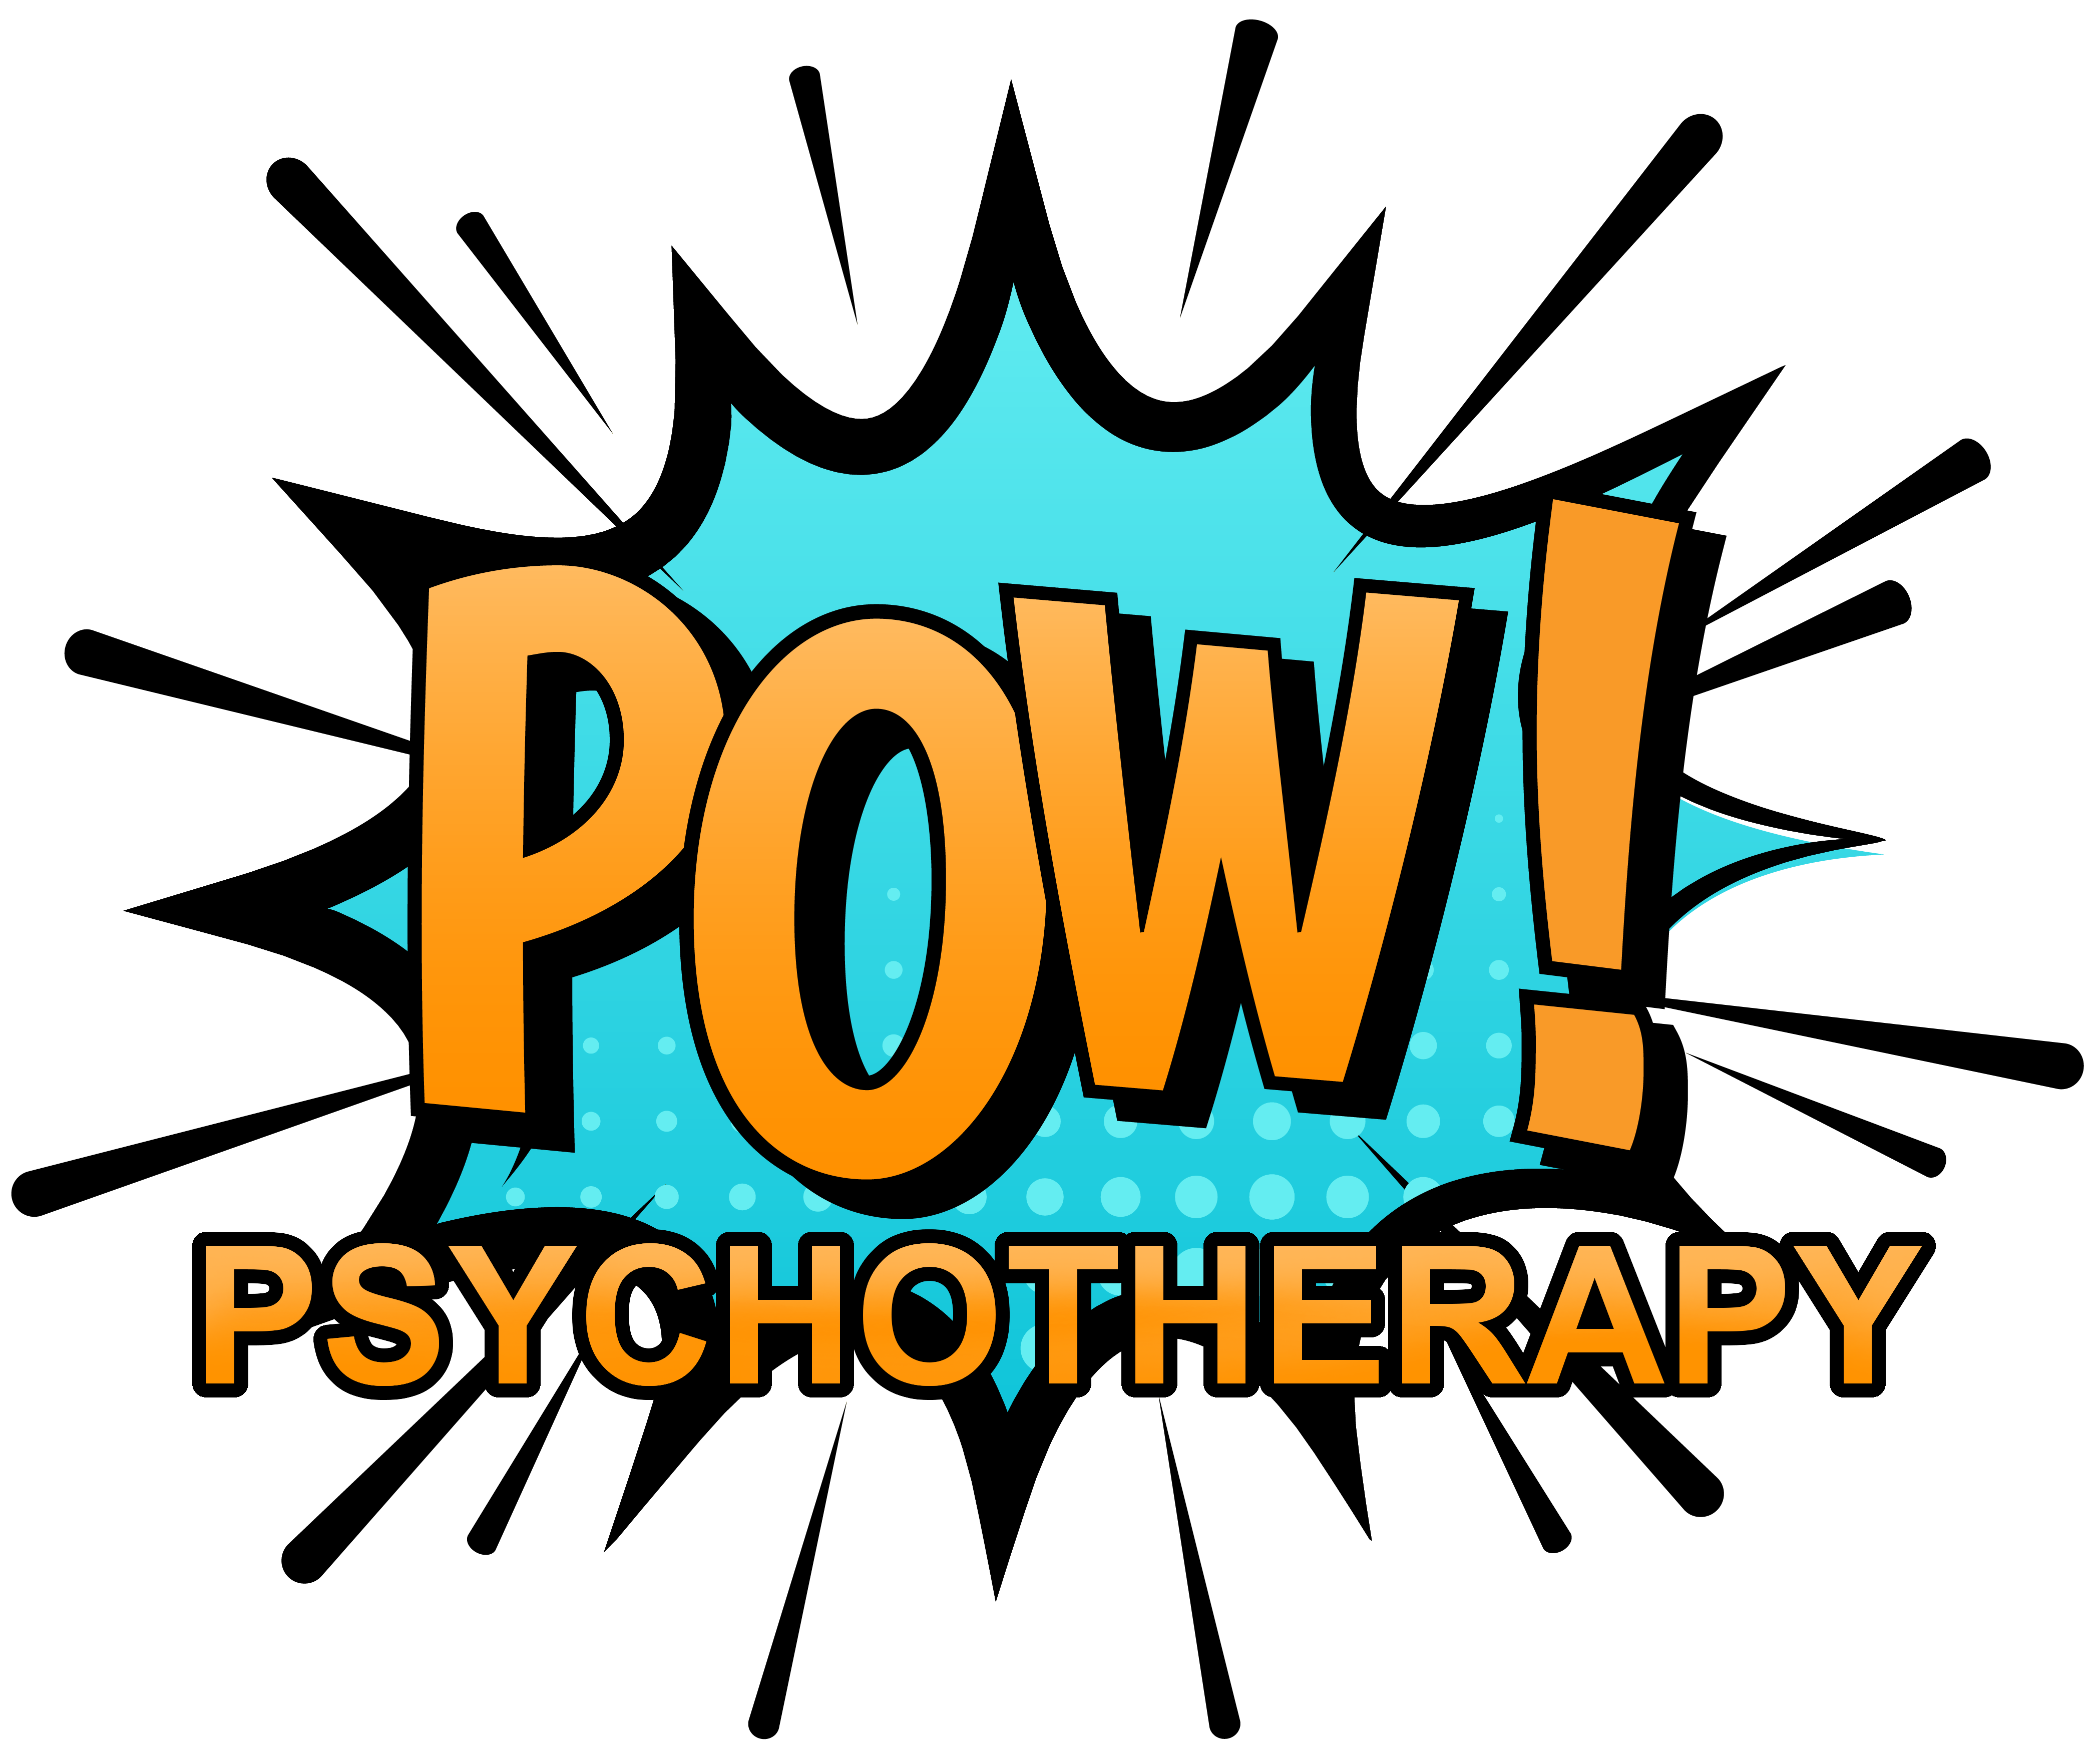 Psychotherapy . Pow logo png black and white download